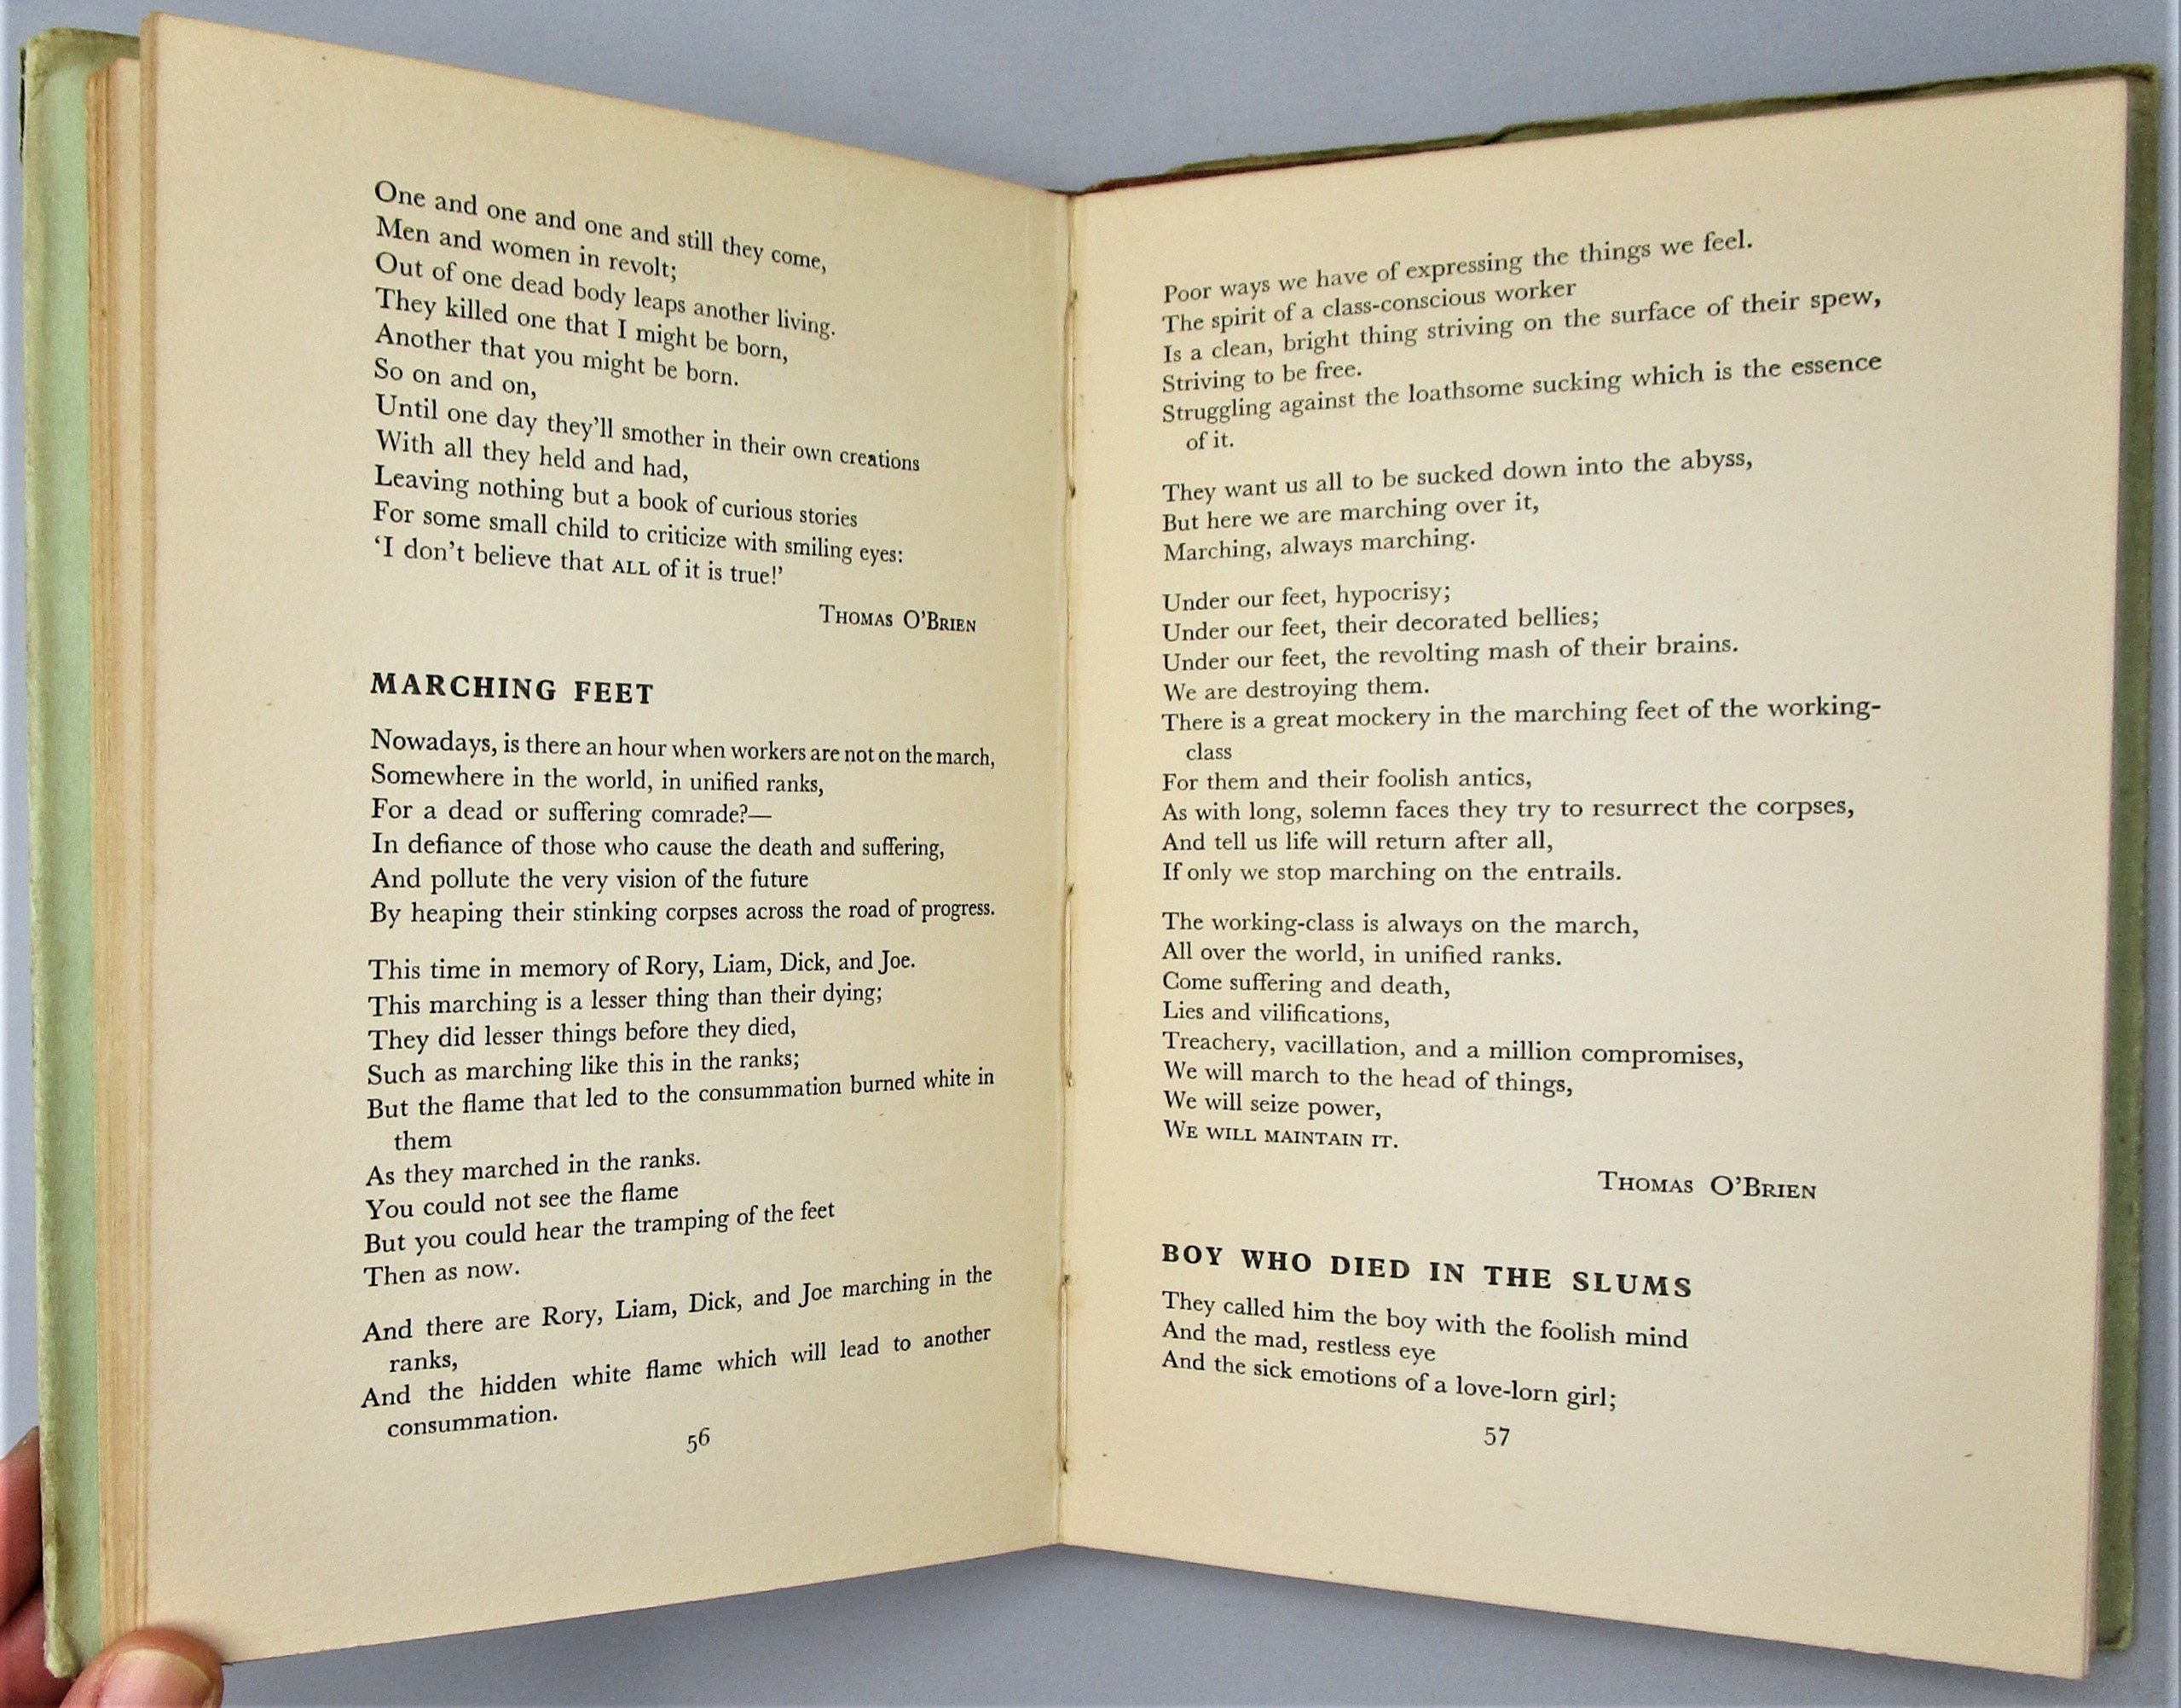 GOOD-BYE, TWILIGHT: SONGS OF THE STRUGGLE IN IRELAND, by  L.H. Daiken; H.A. Kernoff - 1936 [1st Ed]